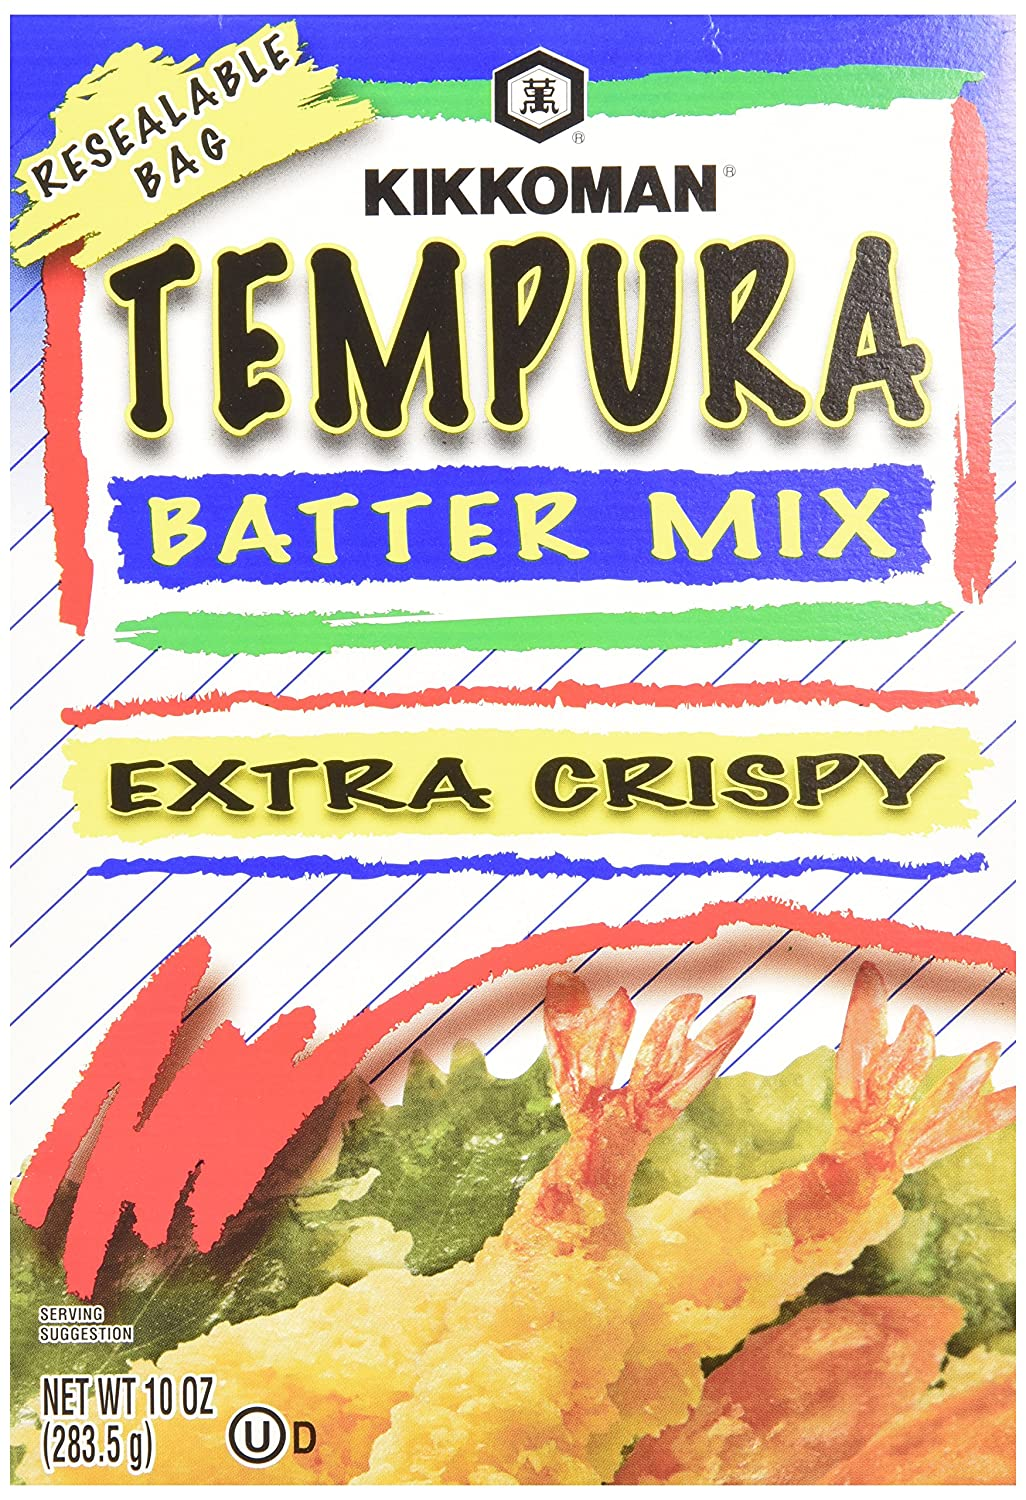 Amazon Com Kikkoman Tempura Batter Mix 10 Ounce Pack Of 6 Tempura Coatings Grocery Gourmet Food